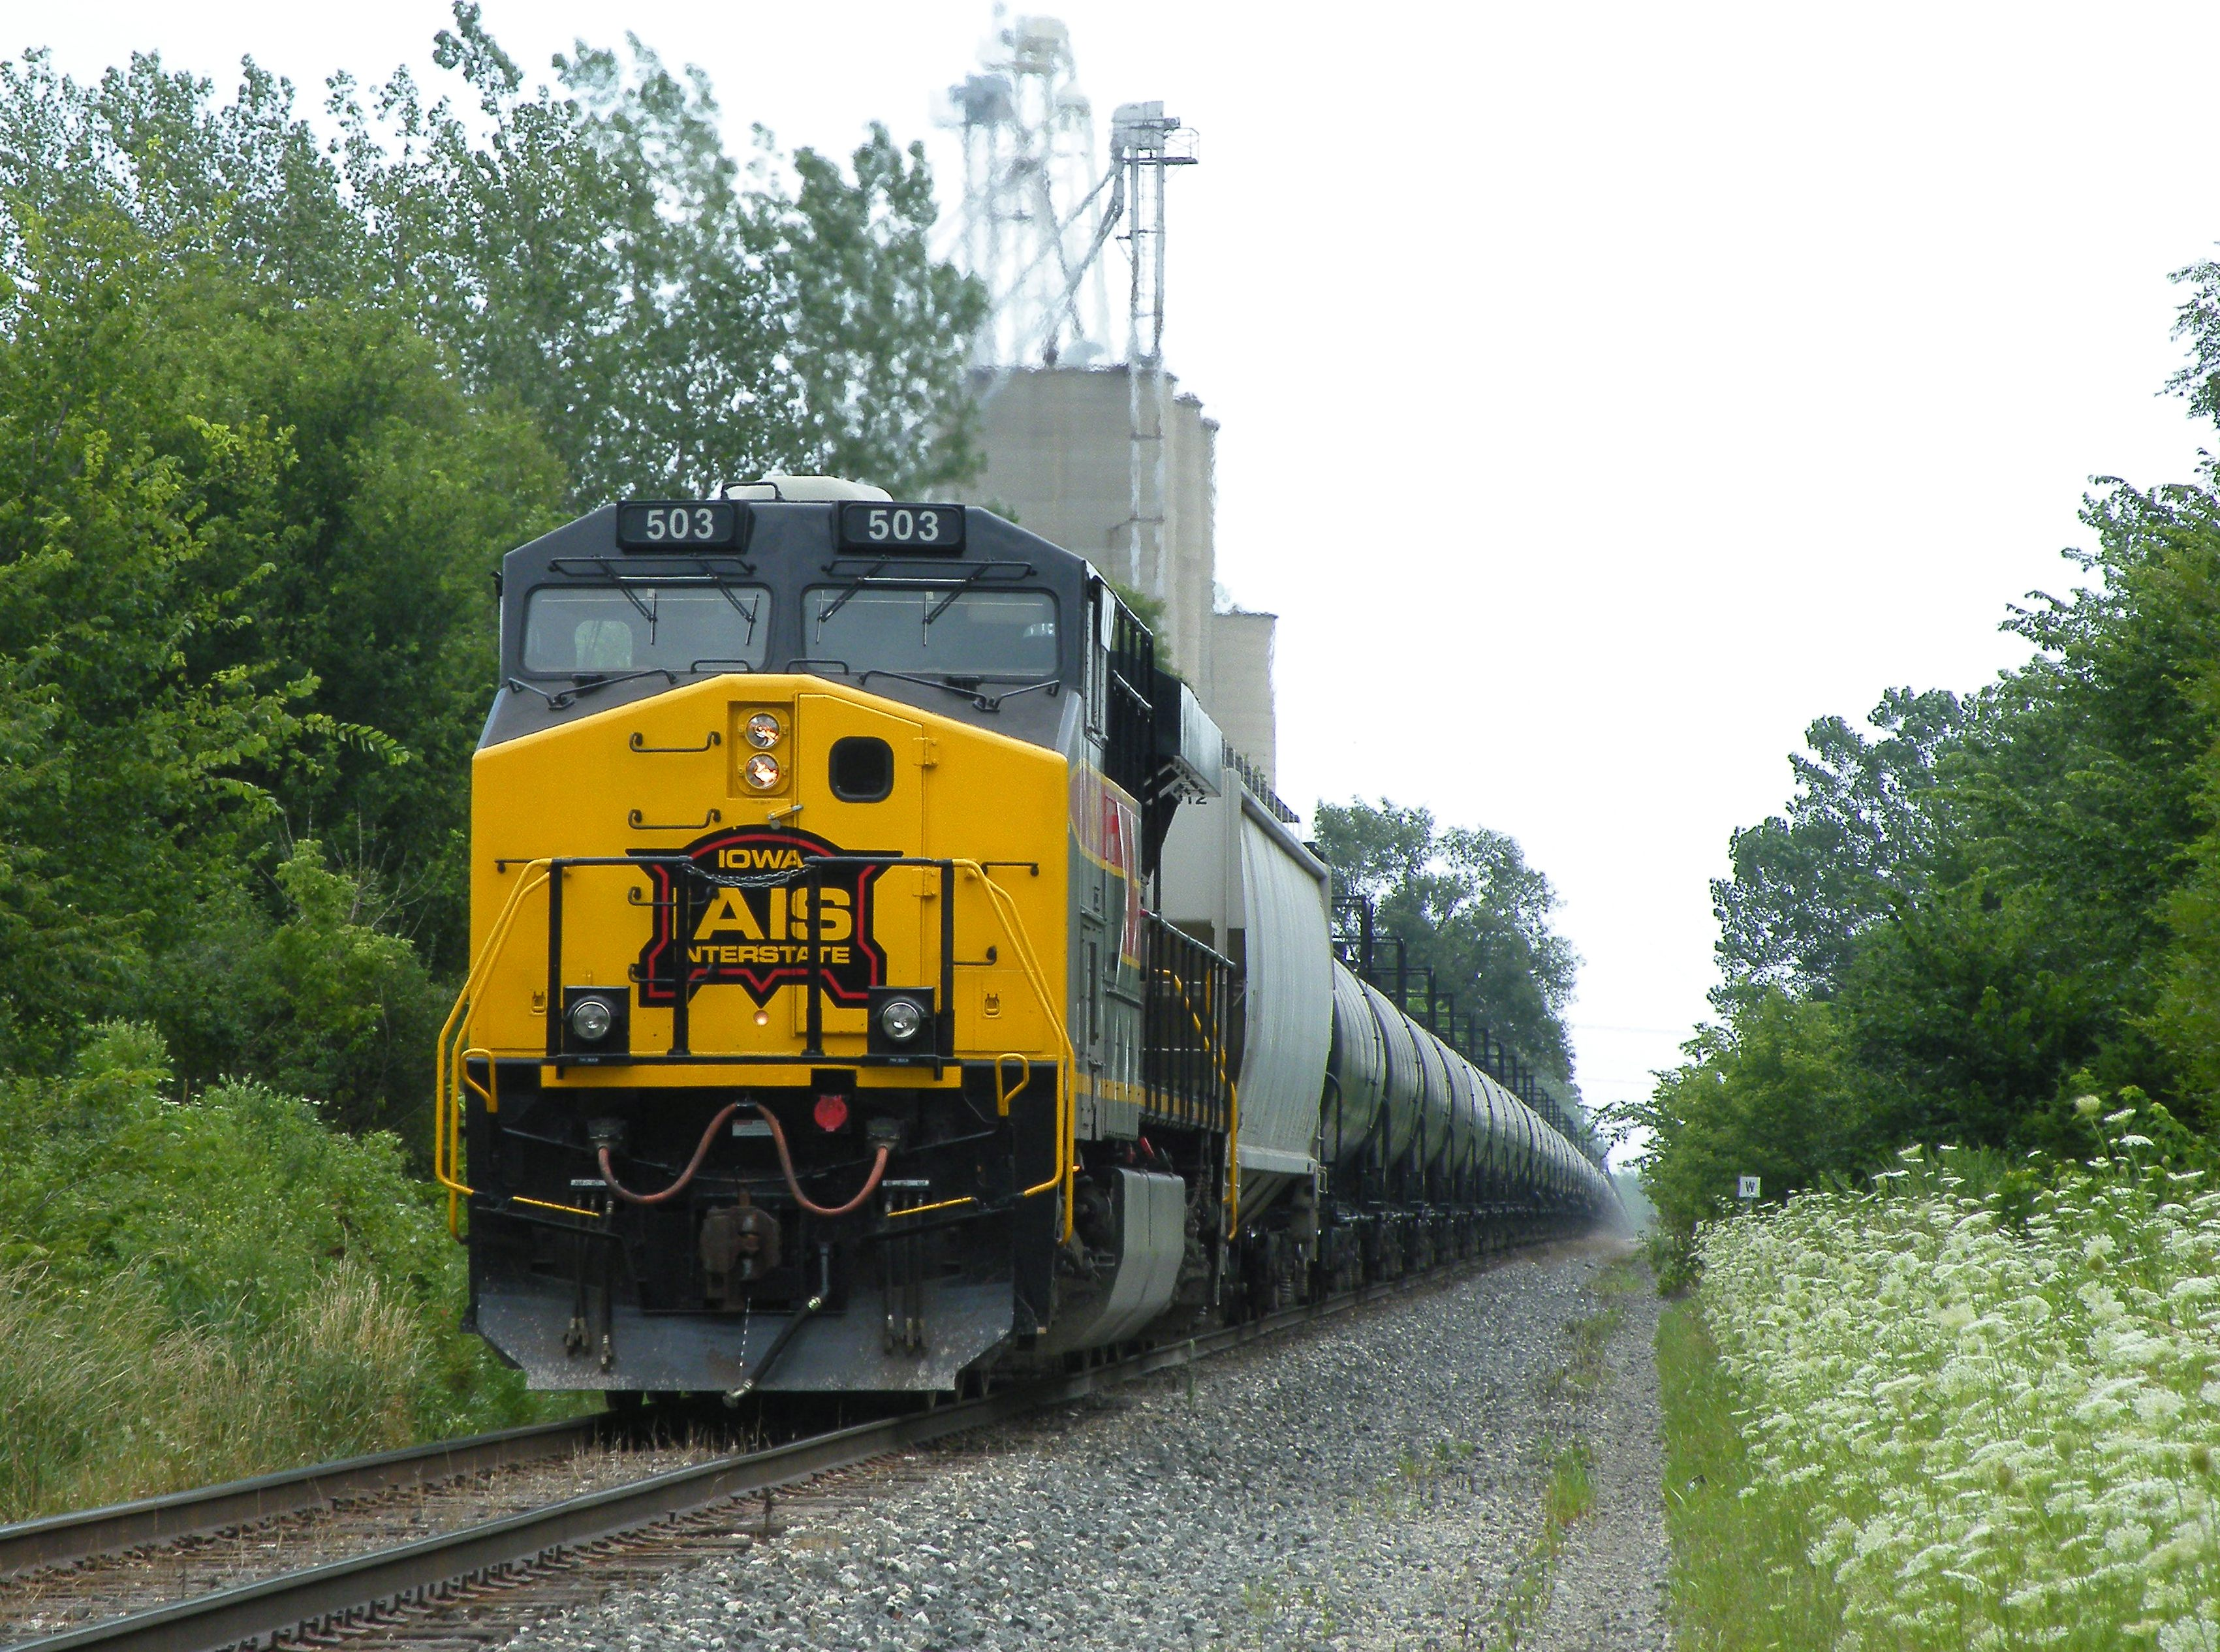 503 brings up the rear as today's DPU on a MEBIU. 07-15-10